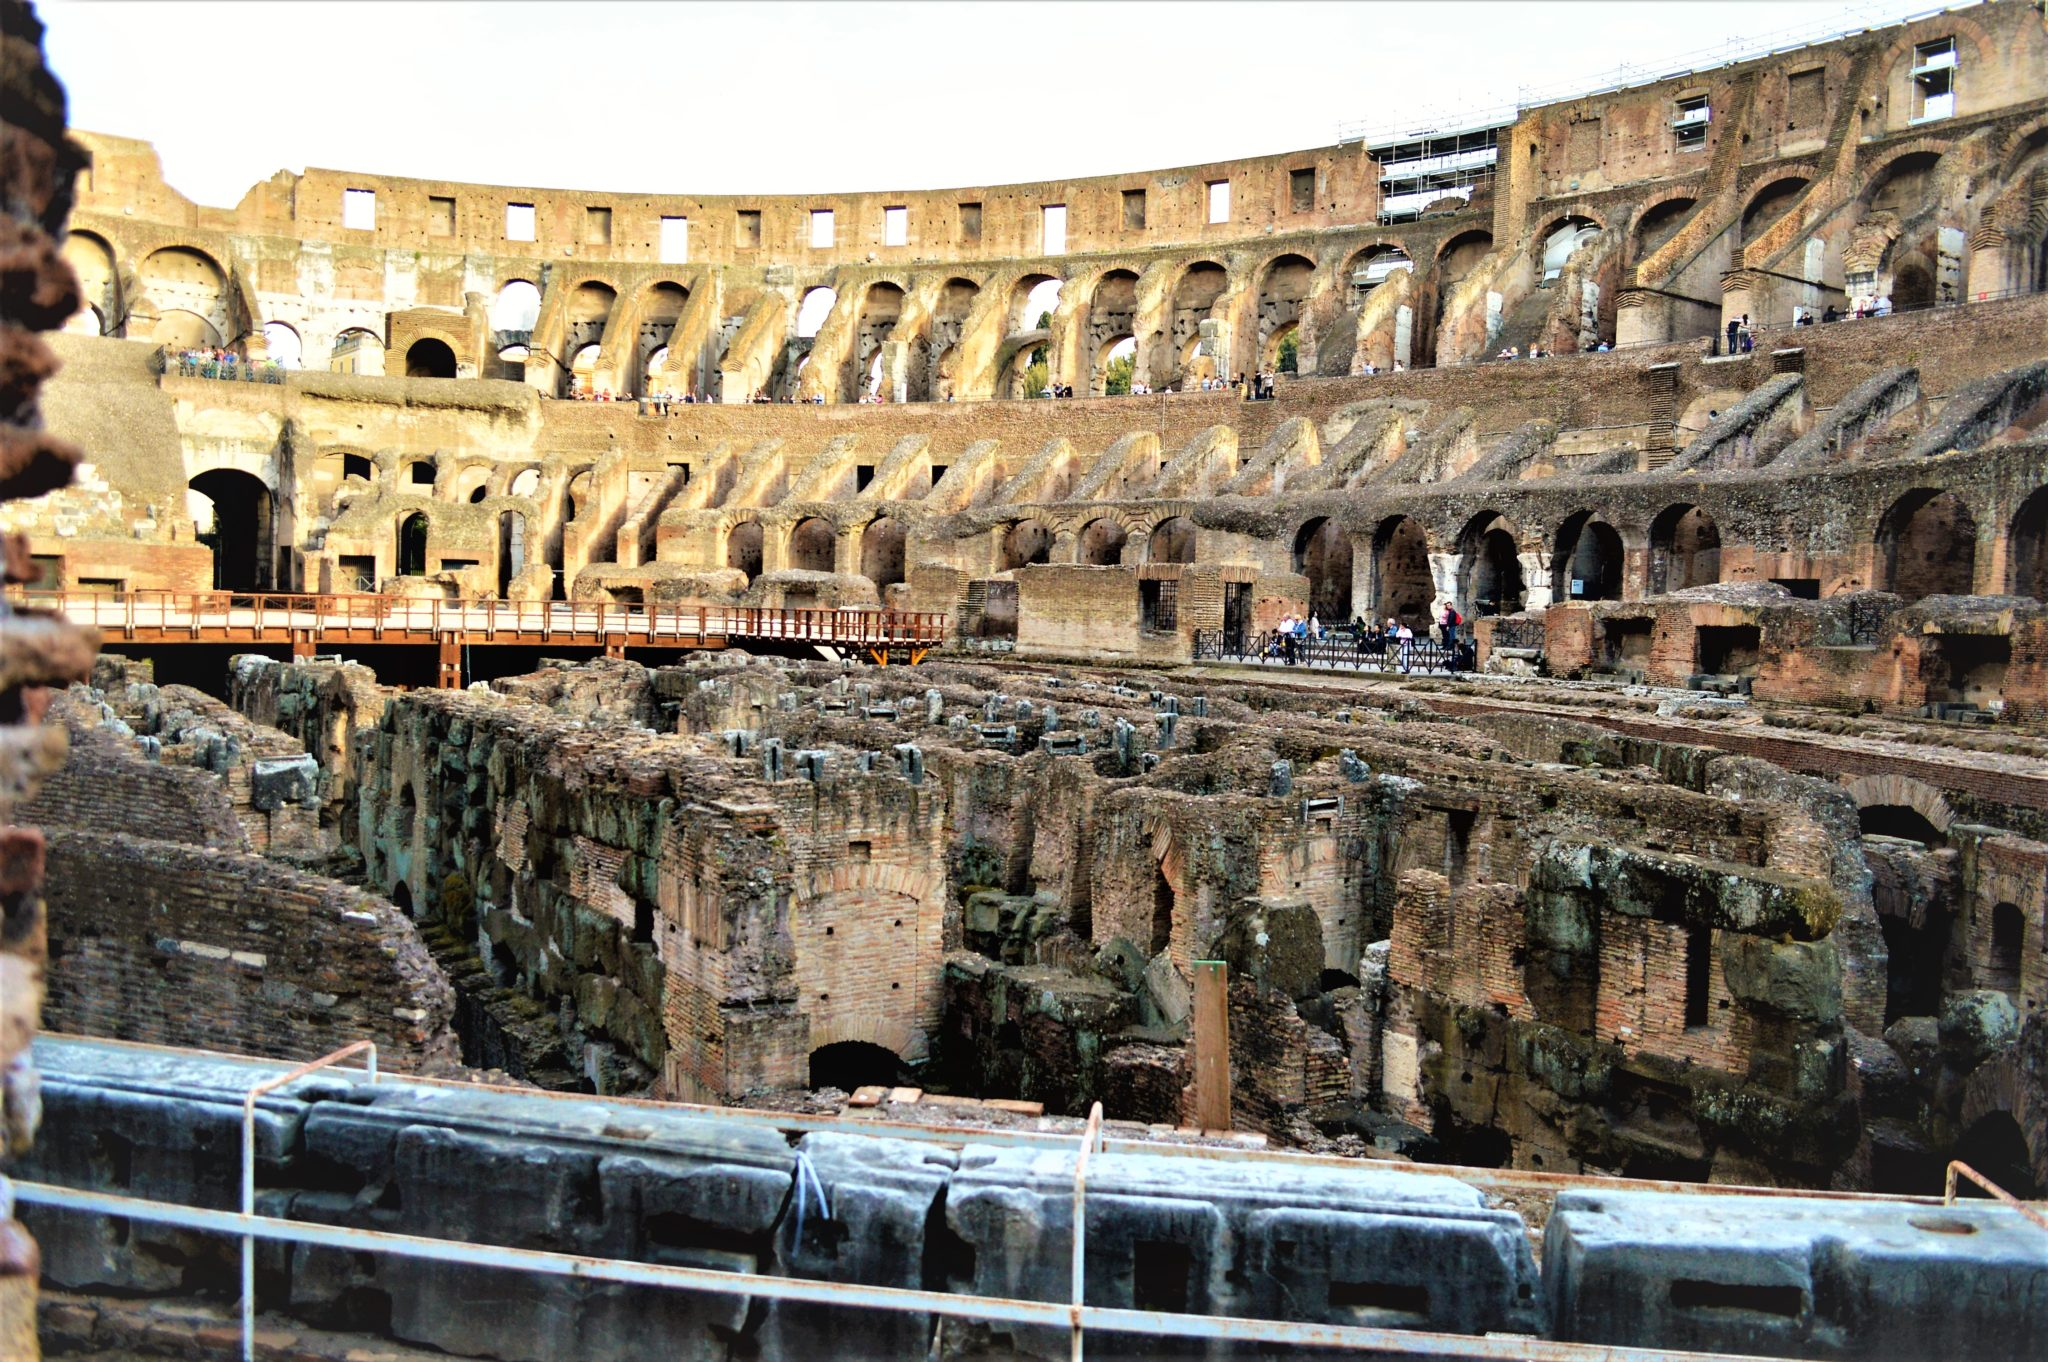 The show area of the Roman Colosseum, Rome, Italy